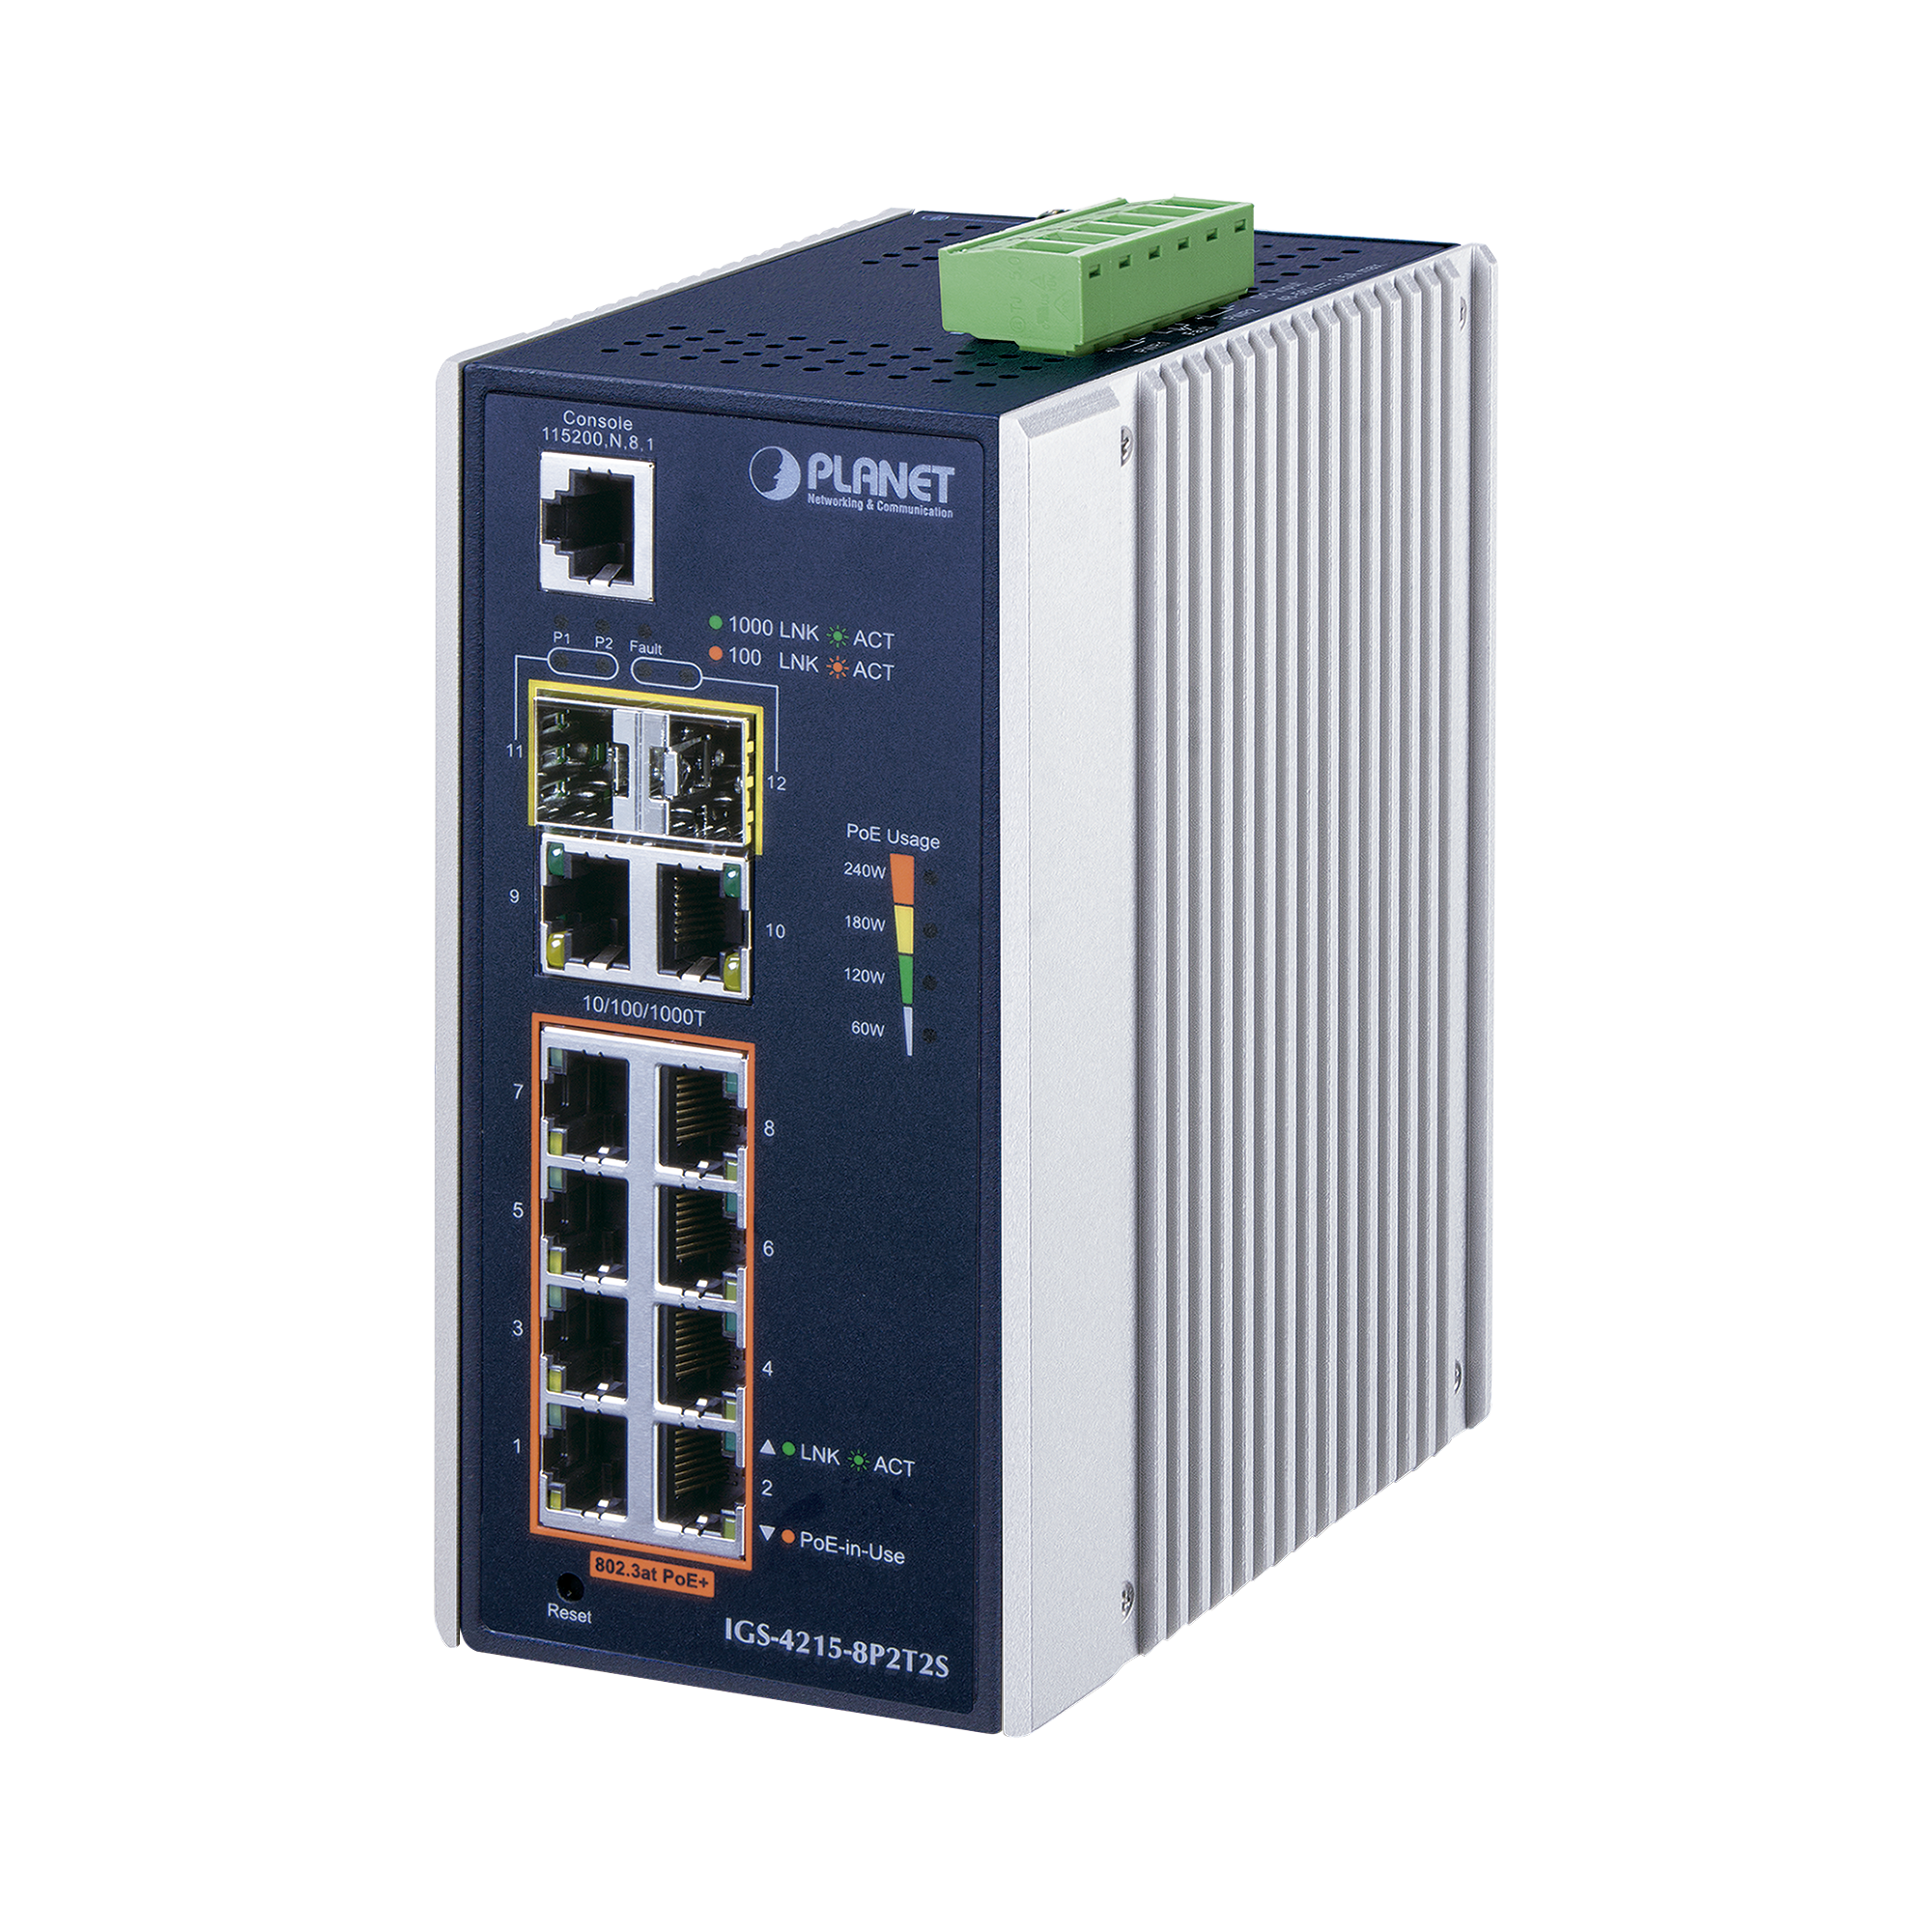 Switch industrial Administrable L2 de 8 puertos Gigabit c/PoE 802.3at + 2 puertos Gigabit + 2 puertos SFP (240W)